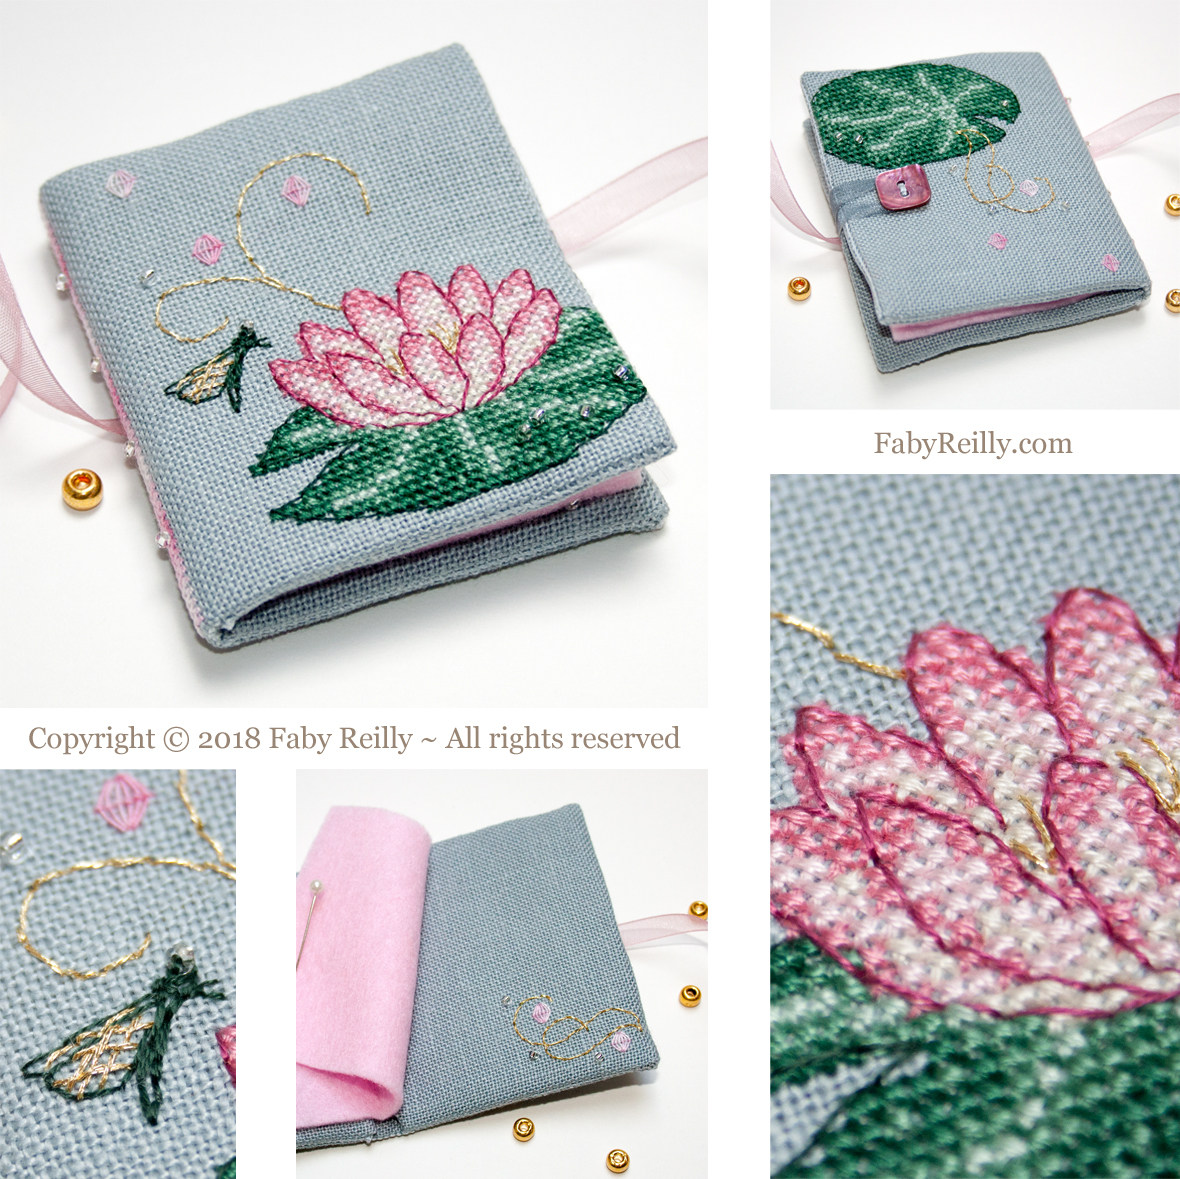 Pink lotus needlebook faby reilly designs